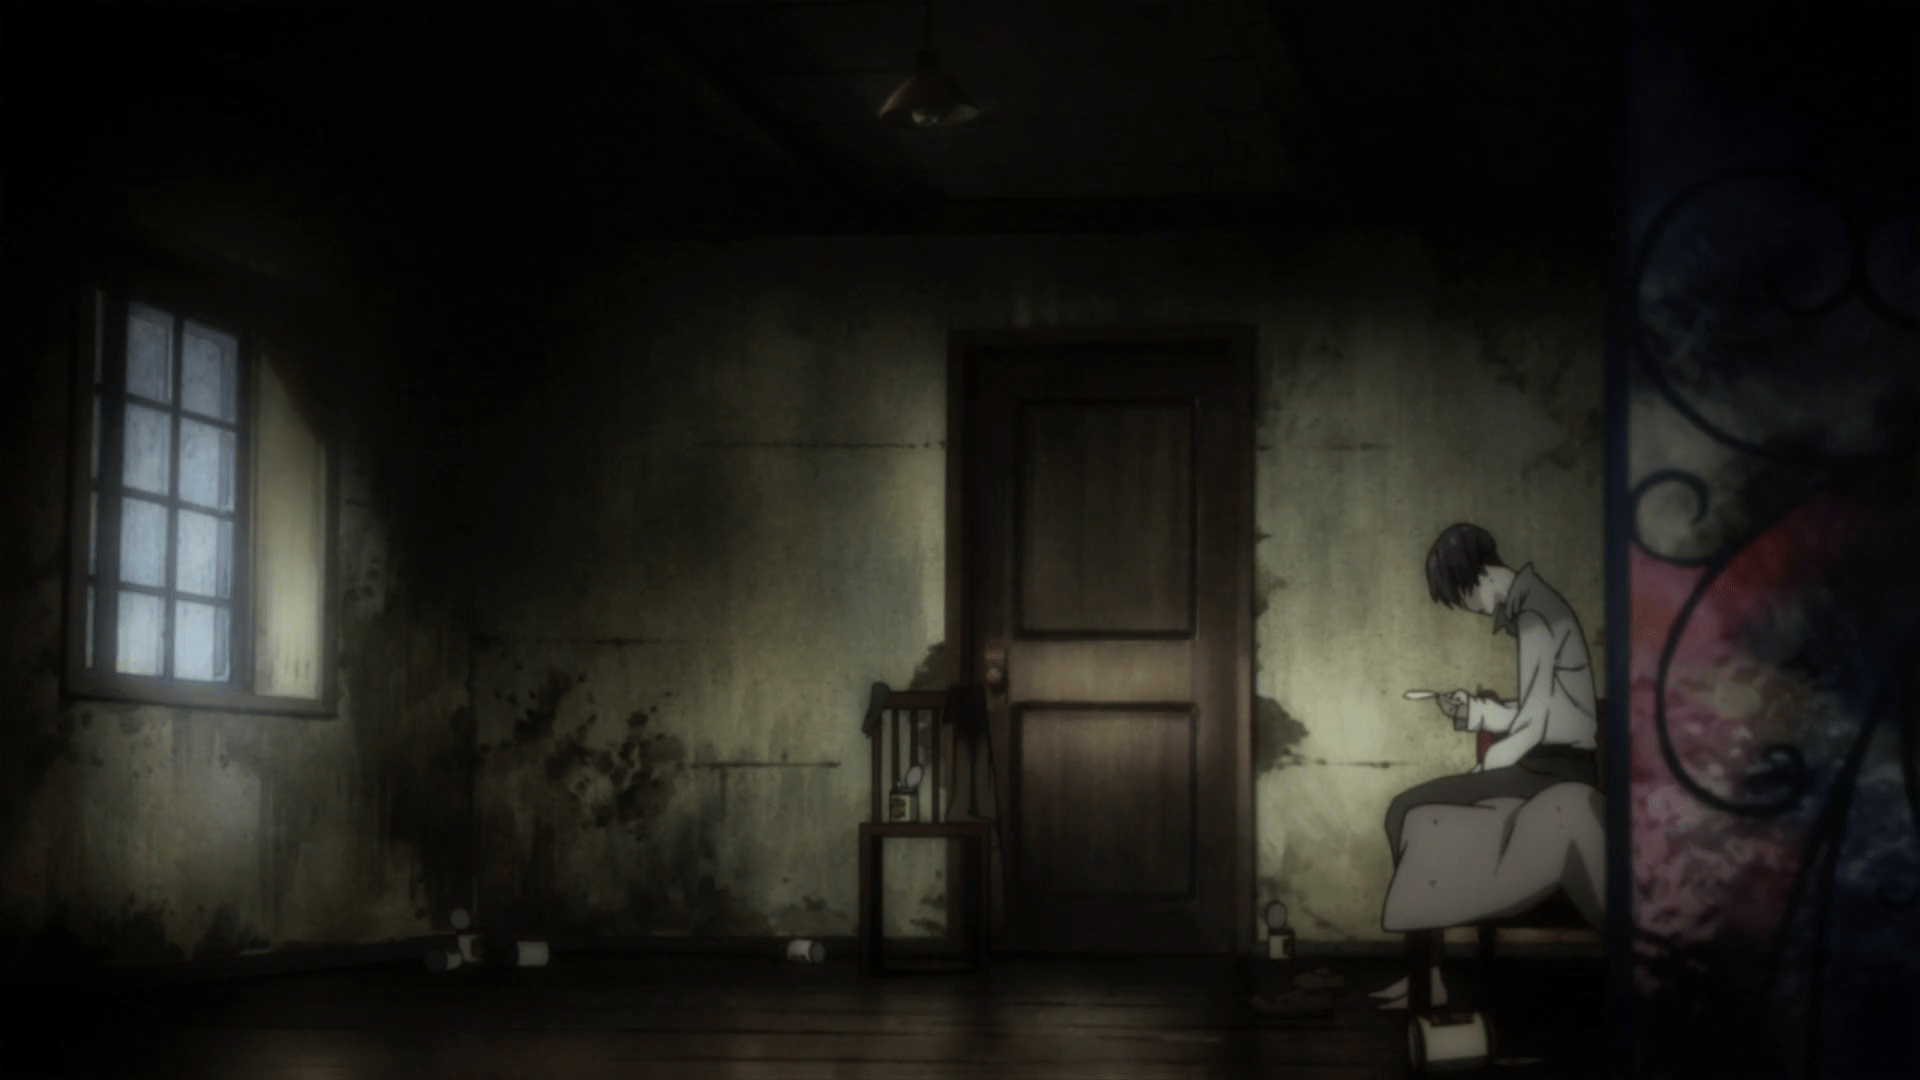 Wallpaper Scenes Of Fall Review Discussion About 91 Days The Chuuni Corner